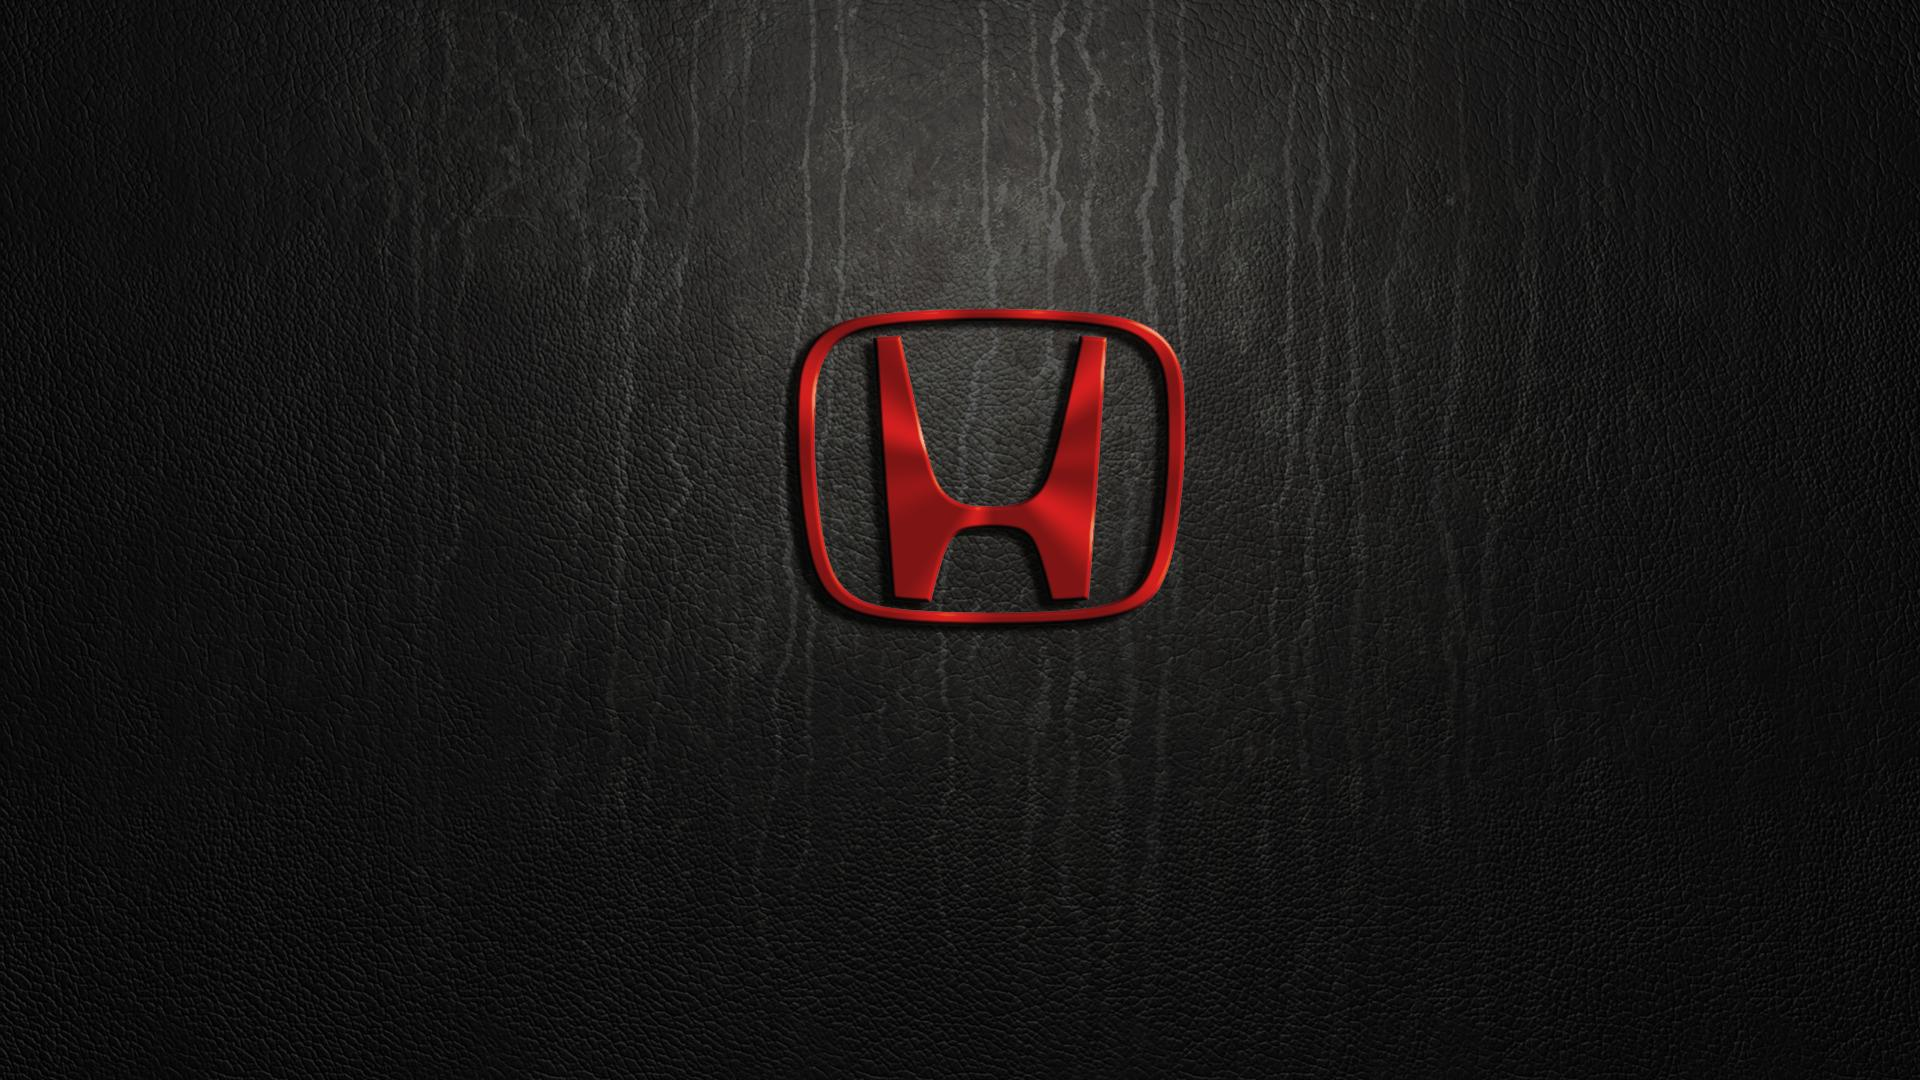 honda hd wallpapers for - photo #10